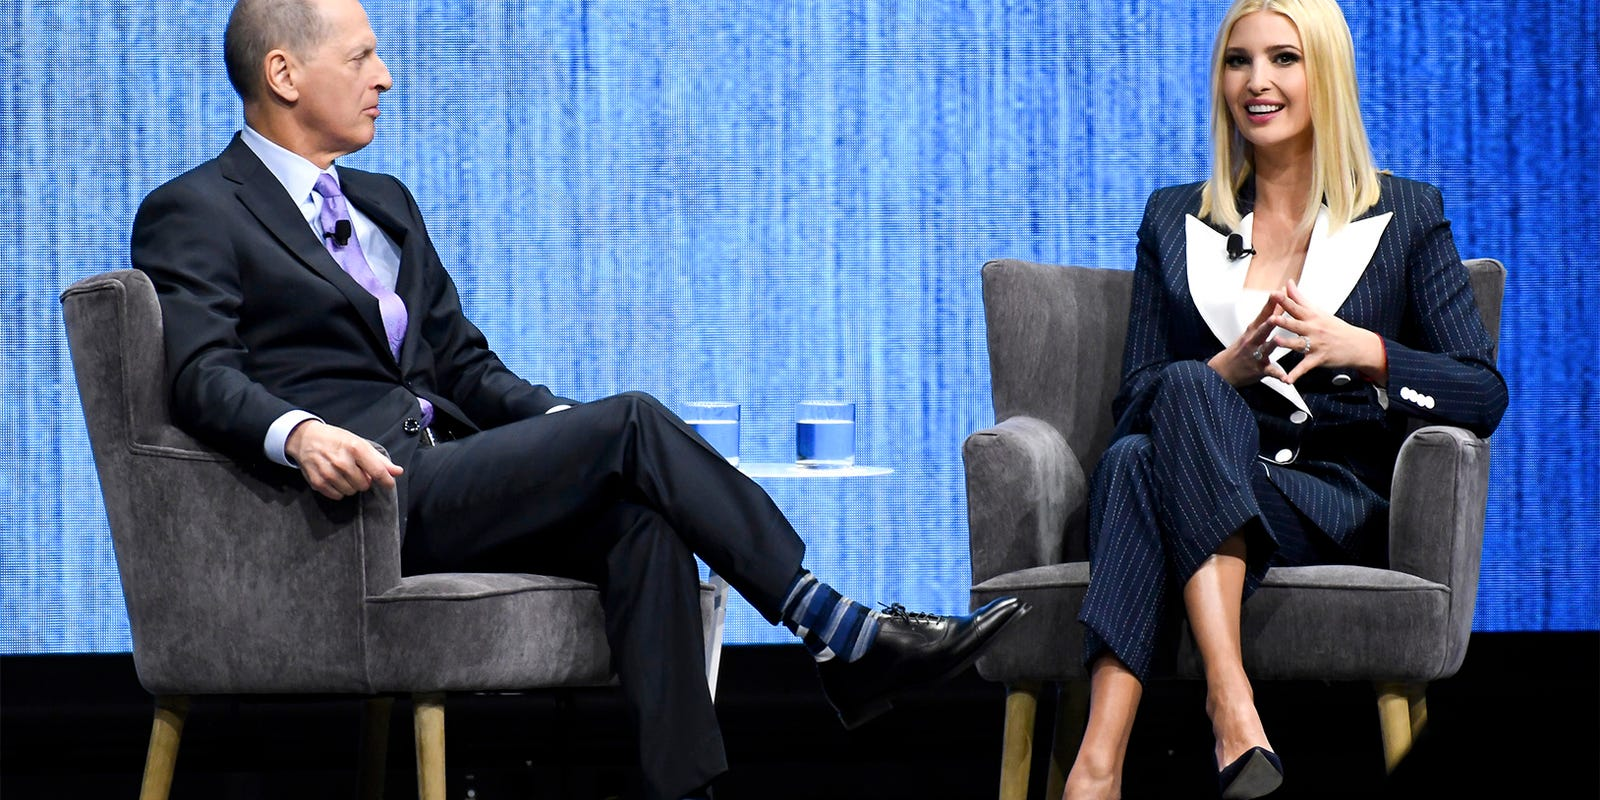 CES 2020: Ivanka Trump says tech can help Americans find and keep jobs